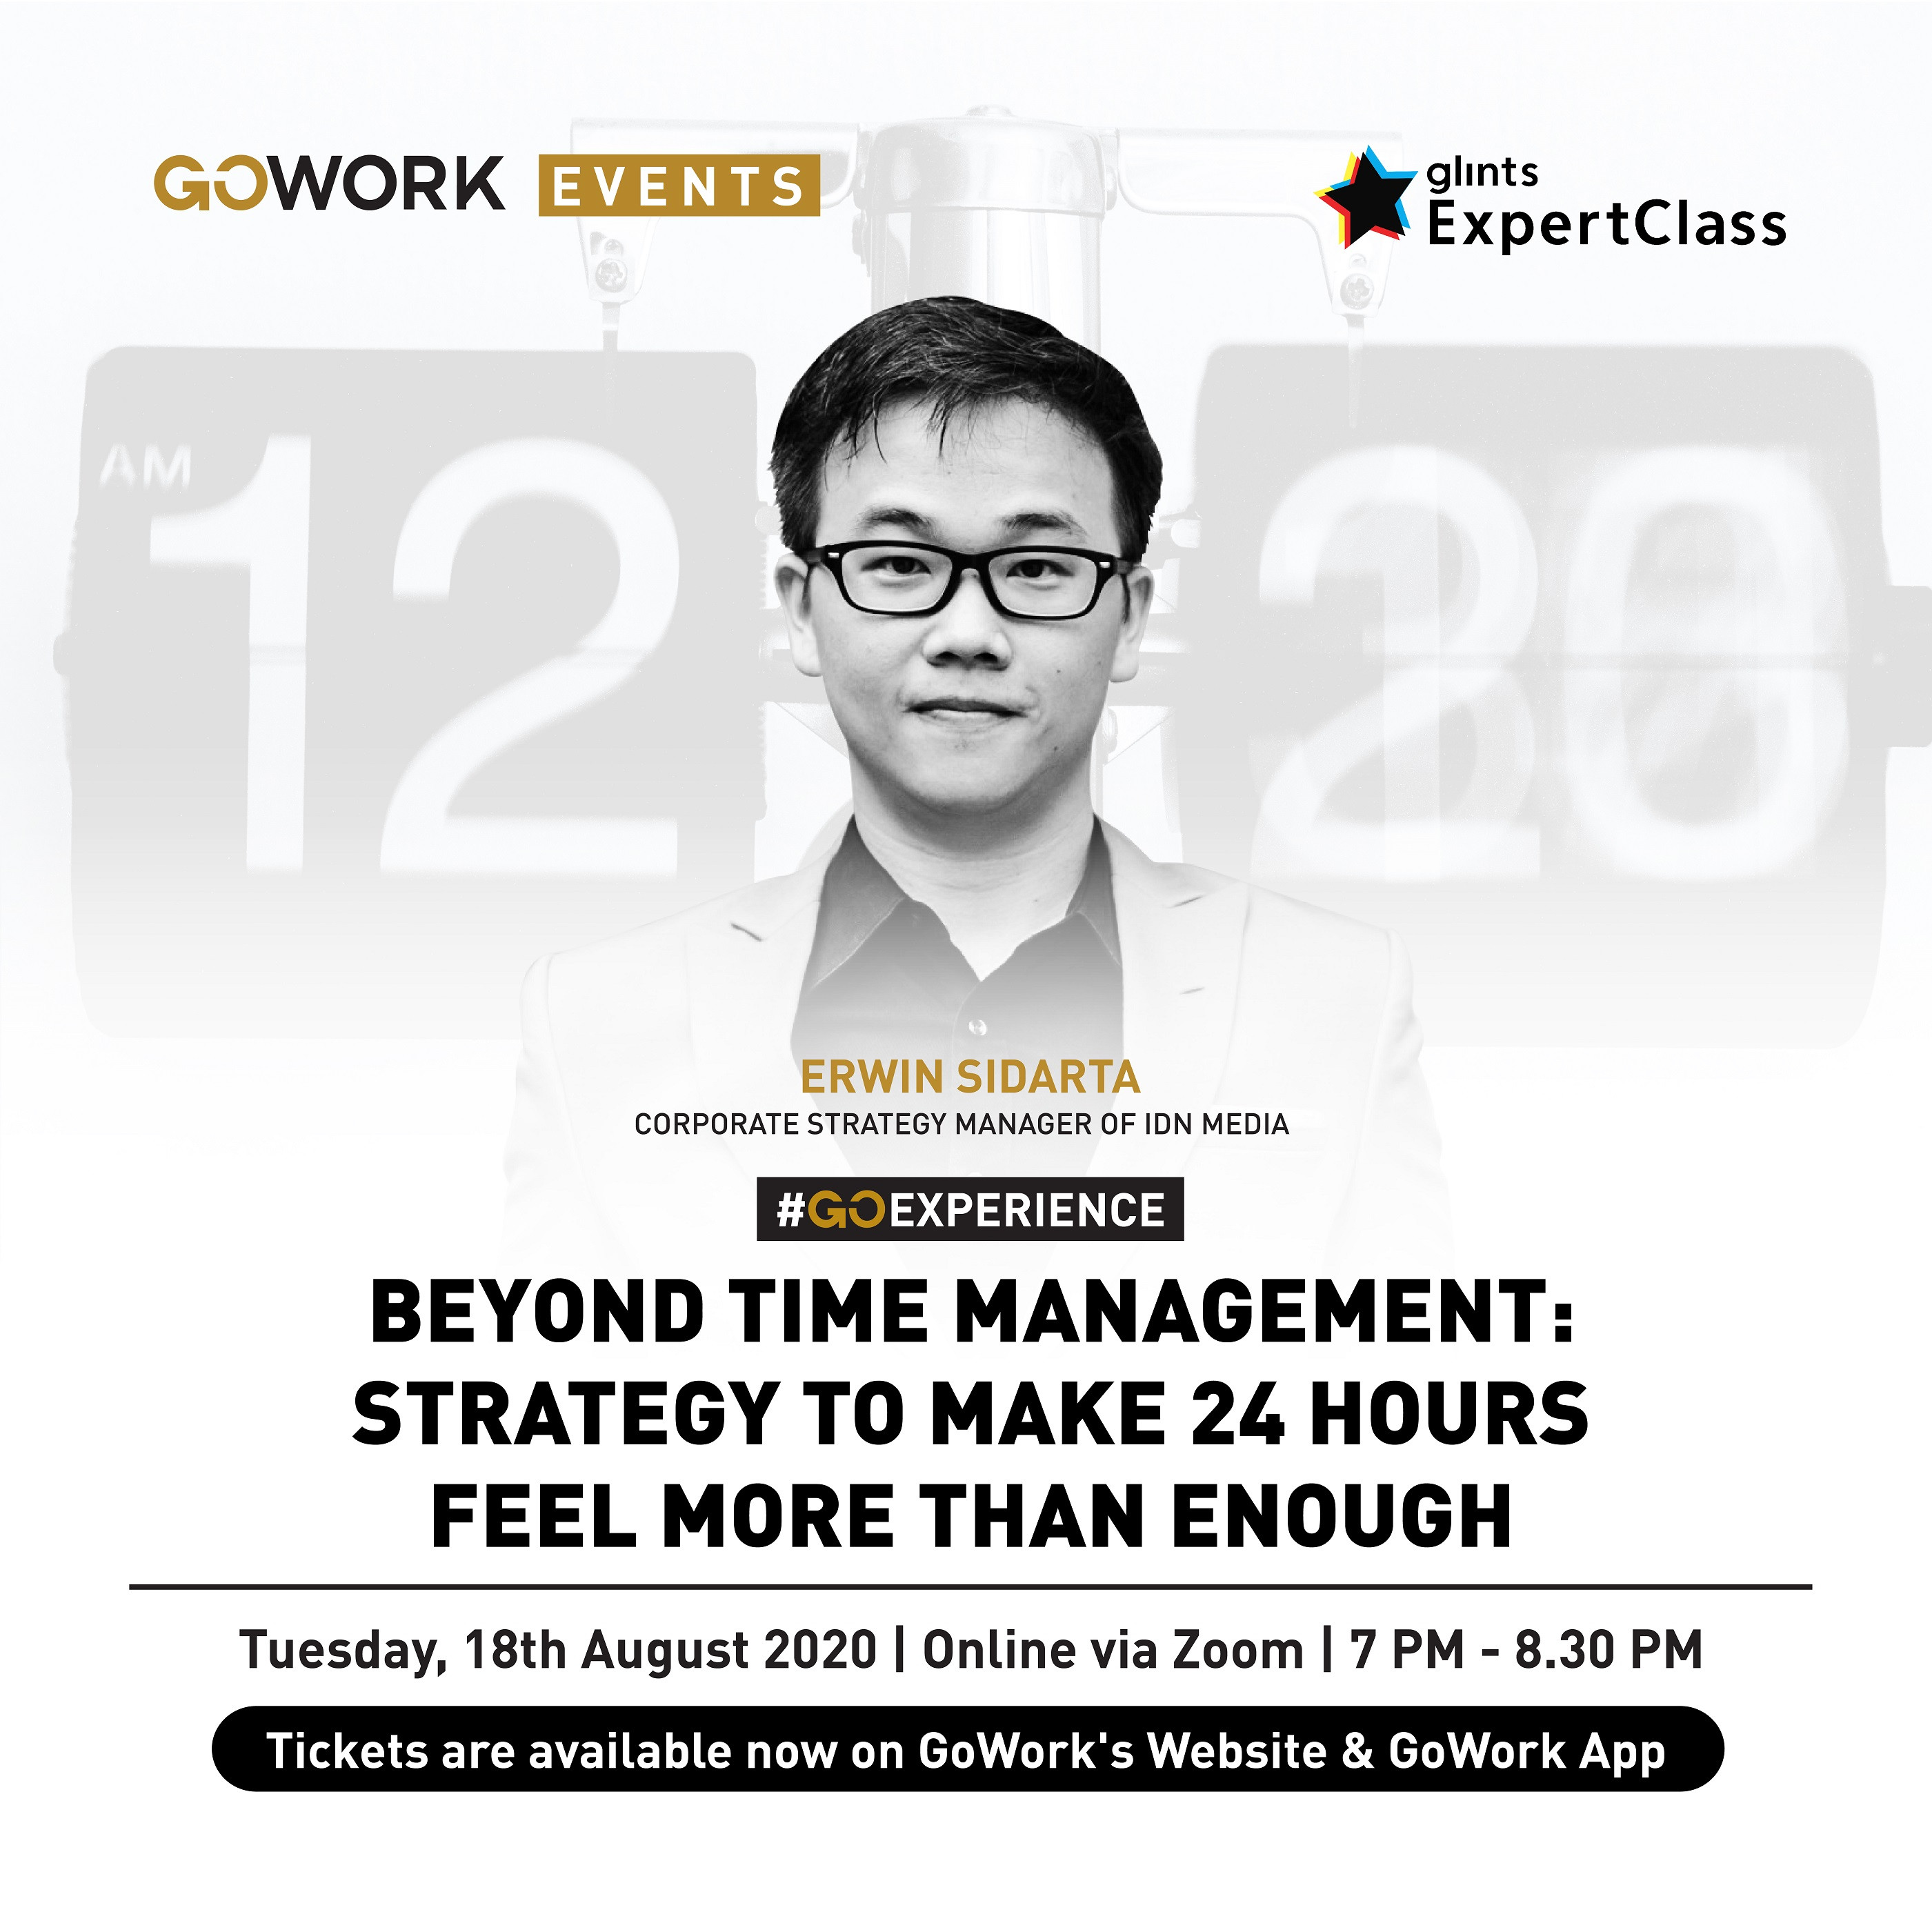 Beyond Time Management: Strategy To Make 24 Hours Feels More Than Enough